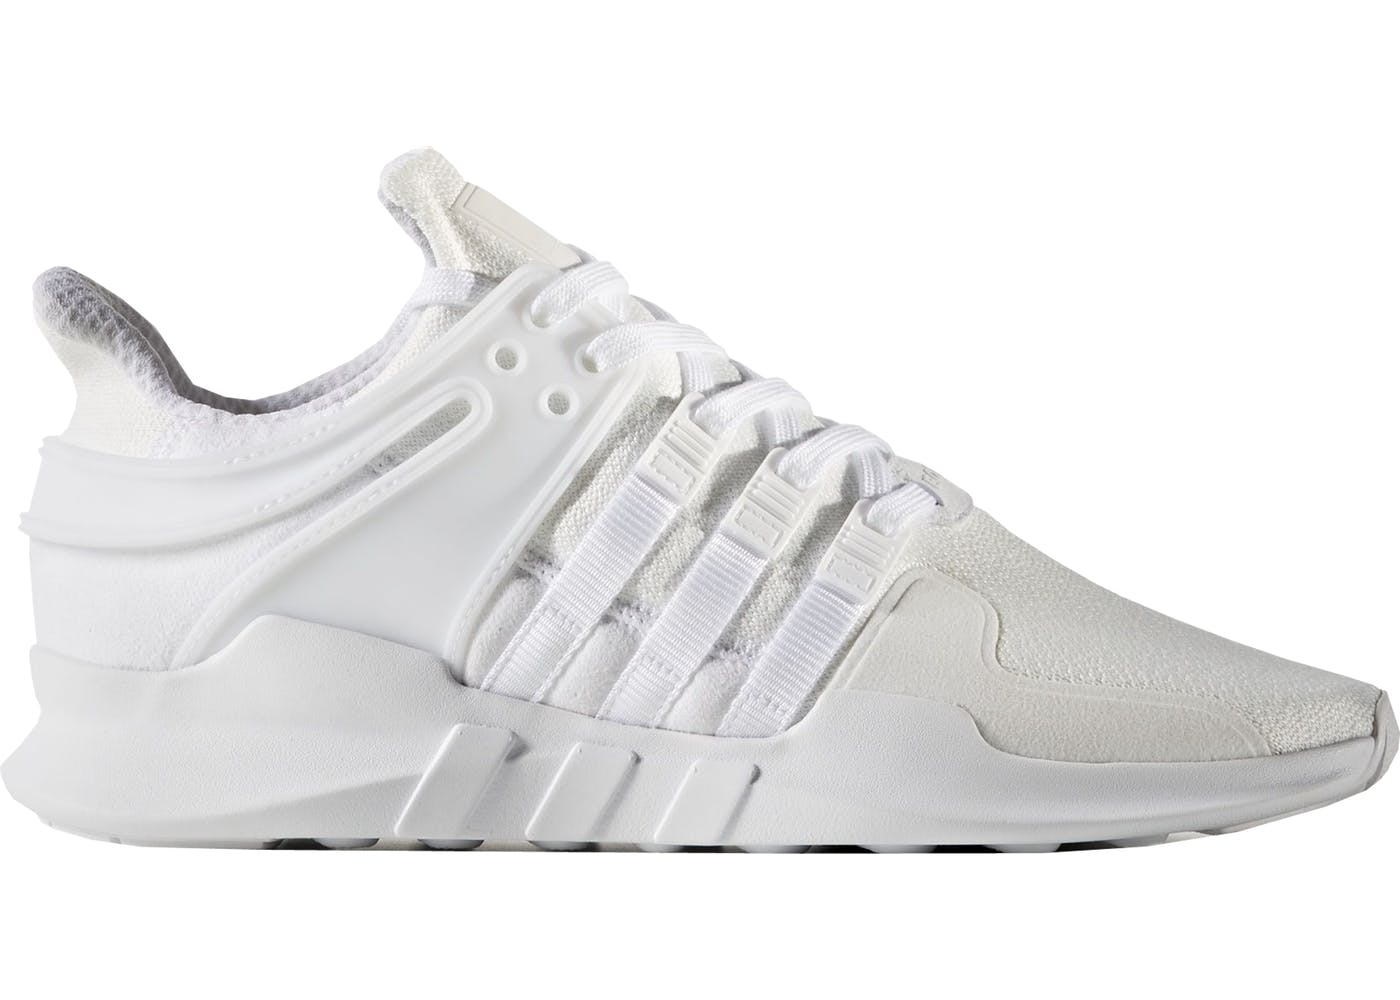 adidas Originals Unveils the EQT Support RF in Two New